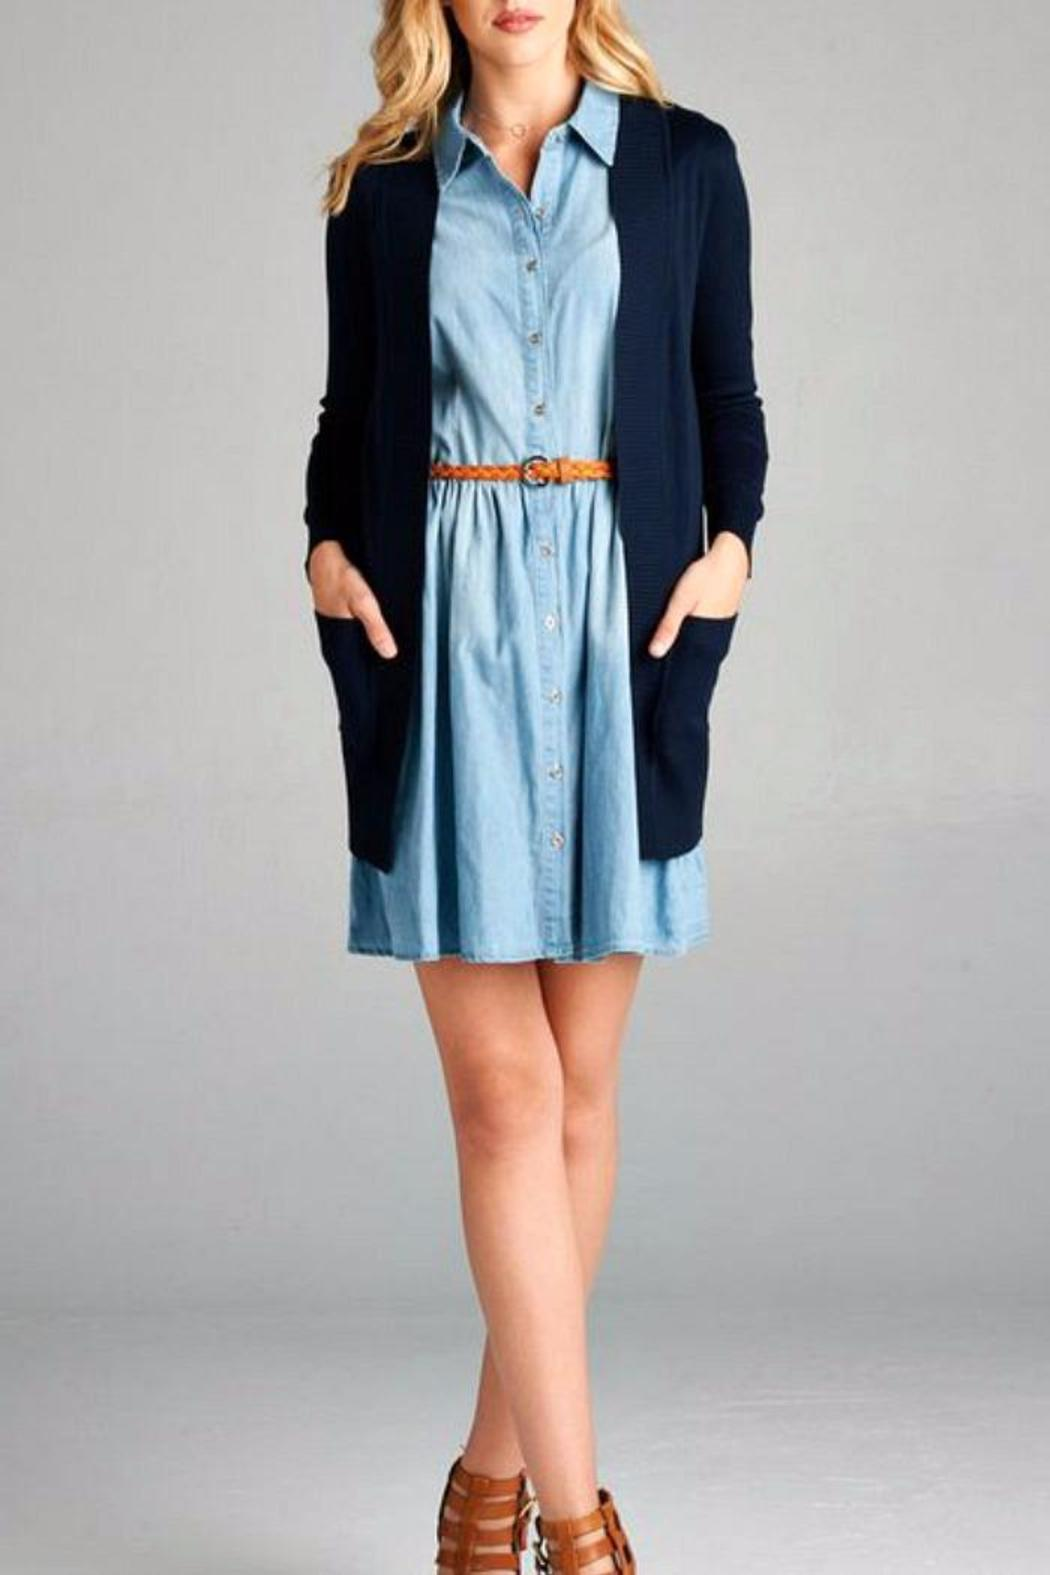 Simply Chic Chambray Shirt Dress - Side Cropped Image